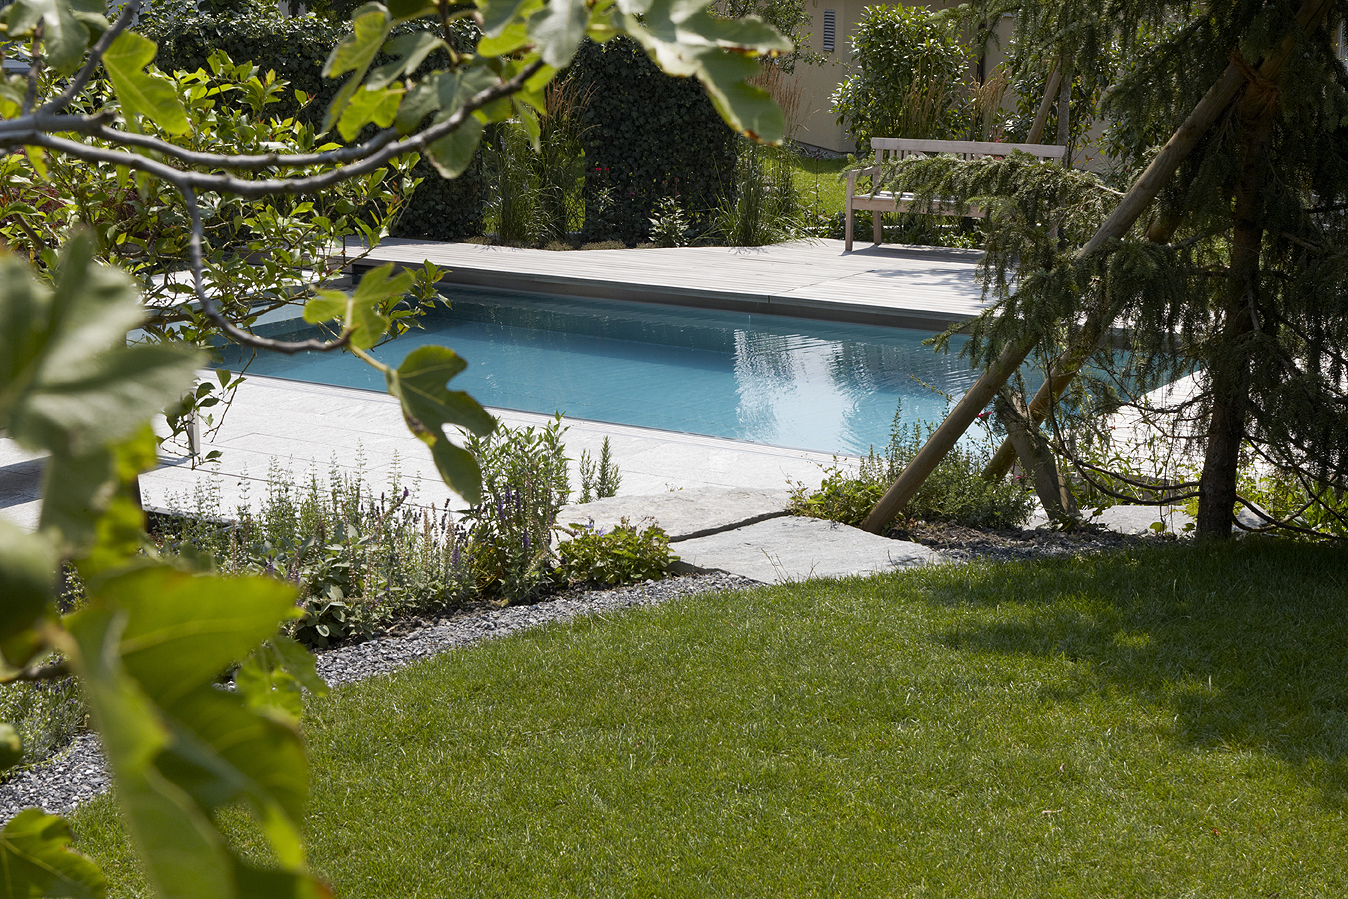 Living-Pool-Naturpool-egli-jona-blog-8